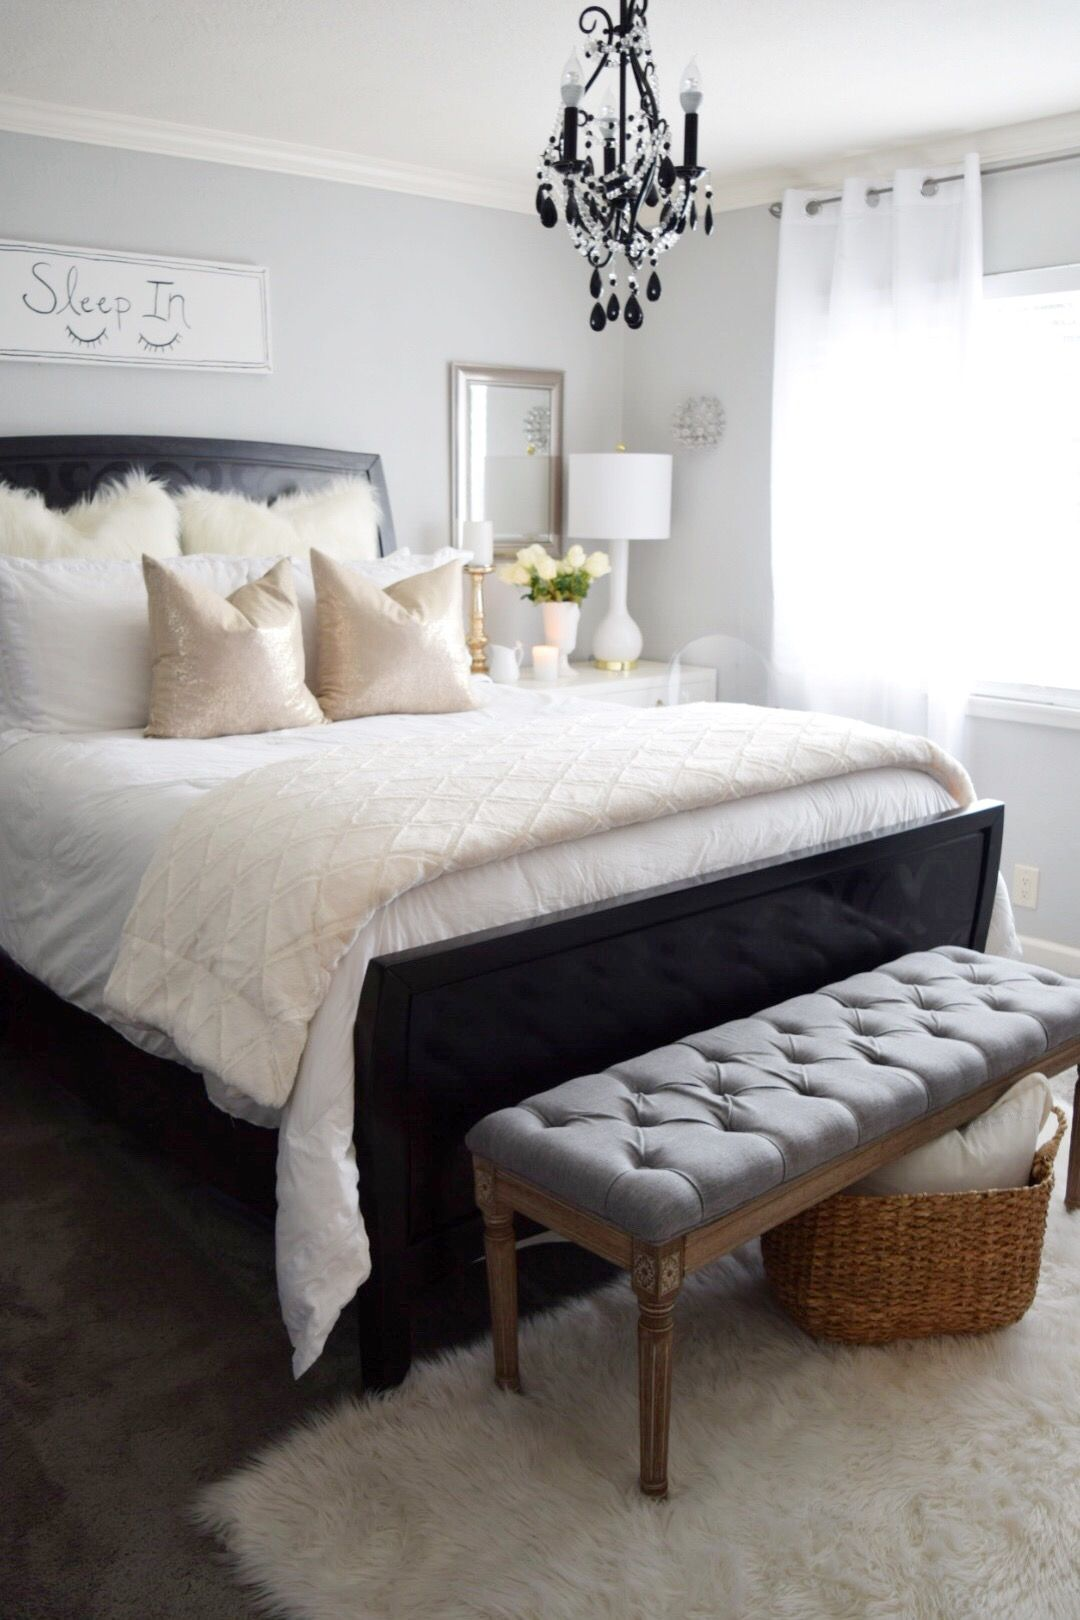 Bedroom Refresh 2 More Quartos Tumblr White Black Furniture